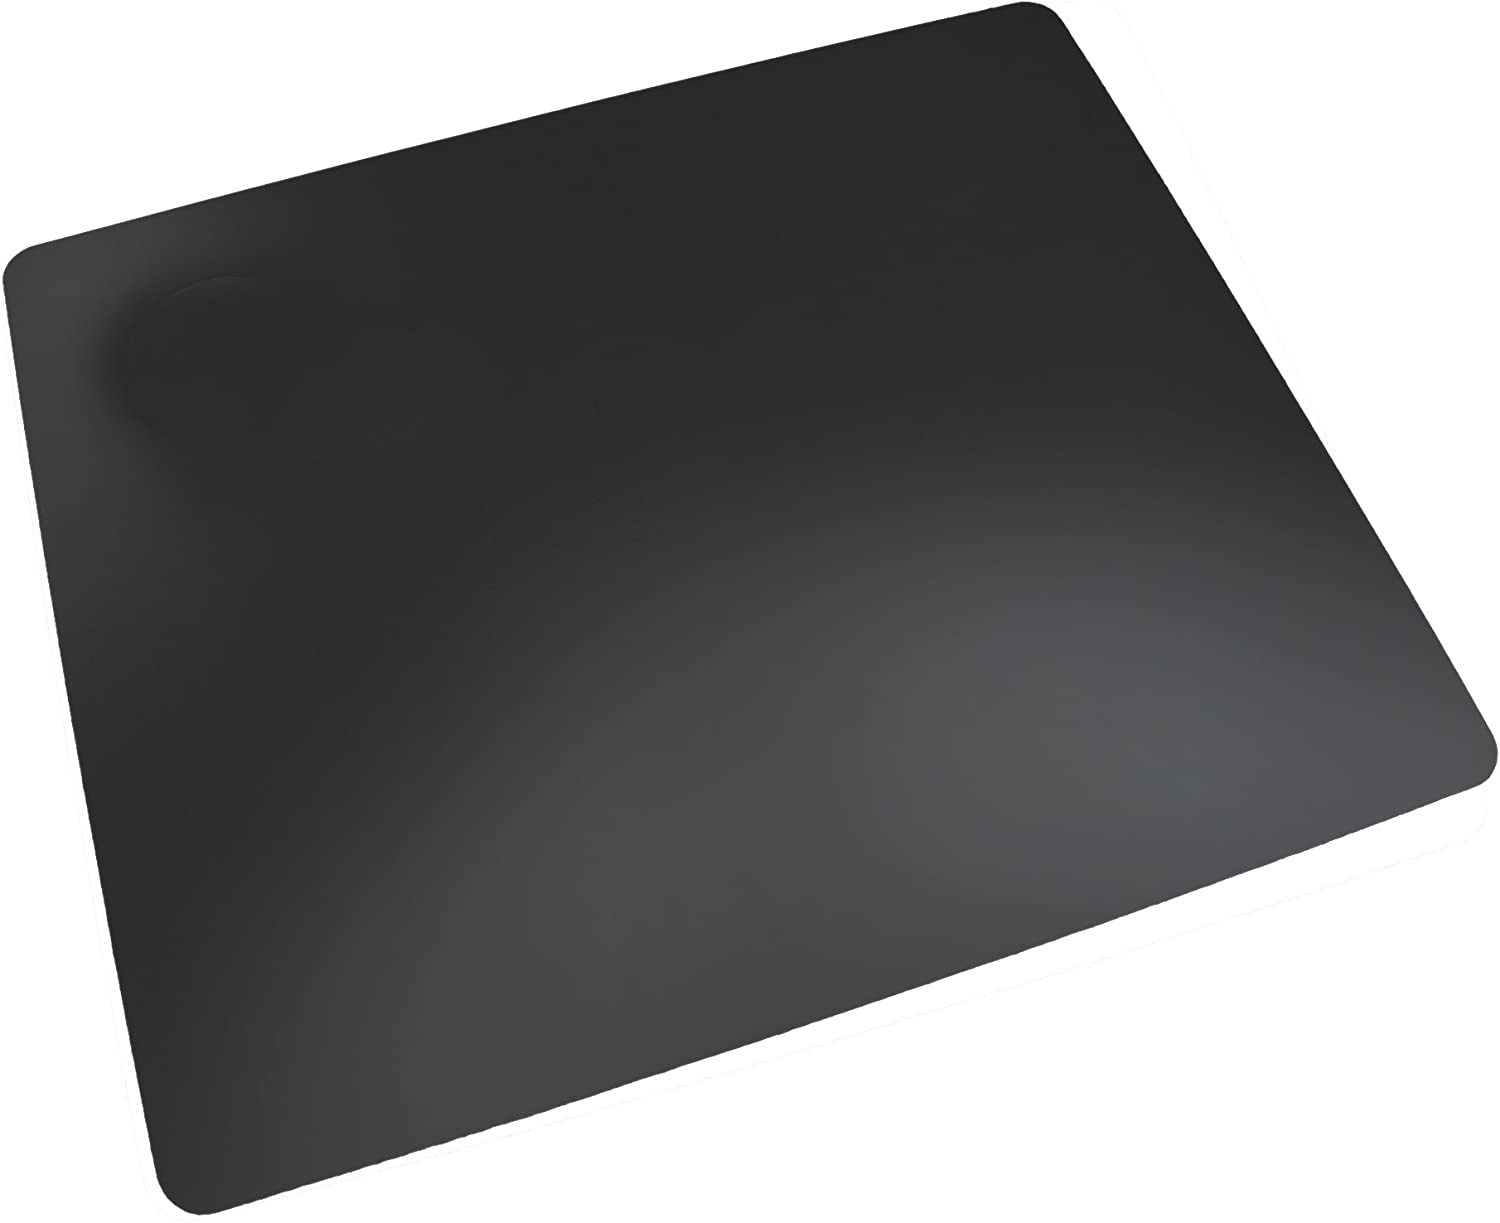 """Artistic 17"""" x 24"""" Rhinolin II Ultra-Smooth Writing Pad Desk Mat with Exclusive Microban Antimicrobial Protection, Black"""